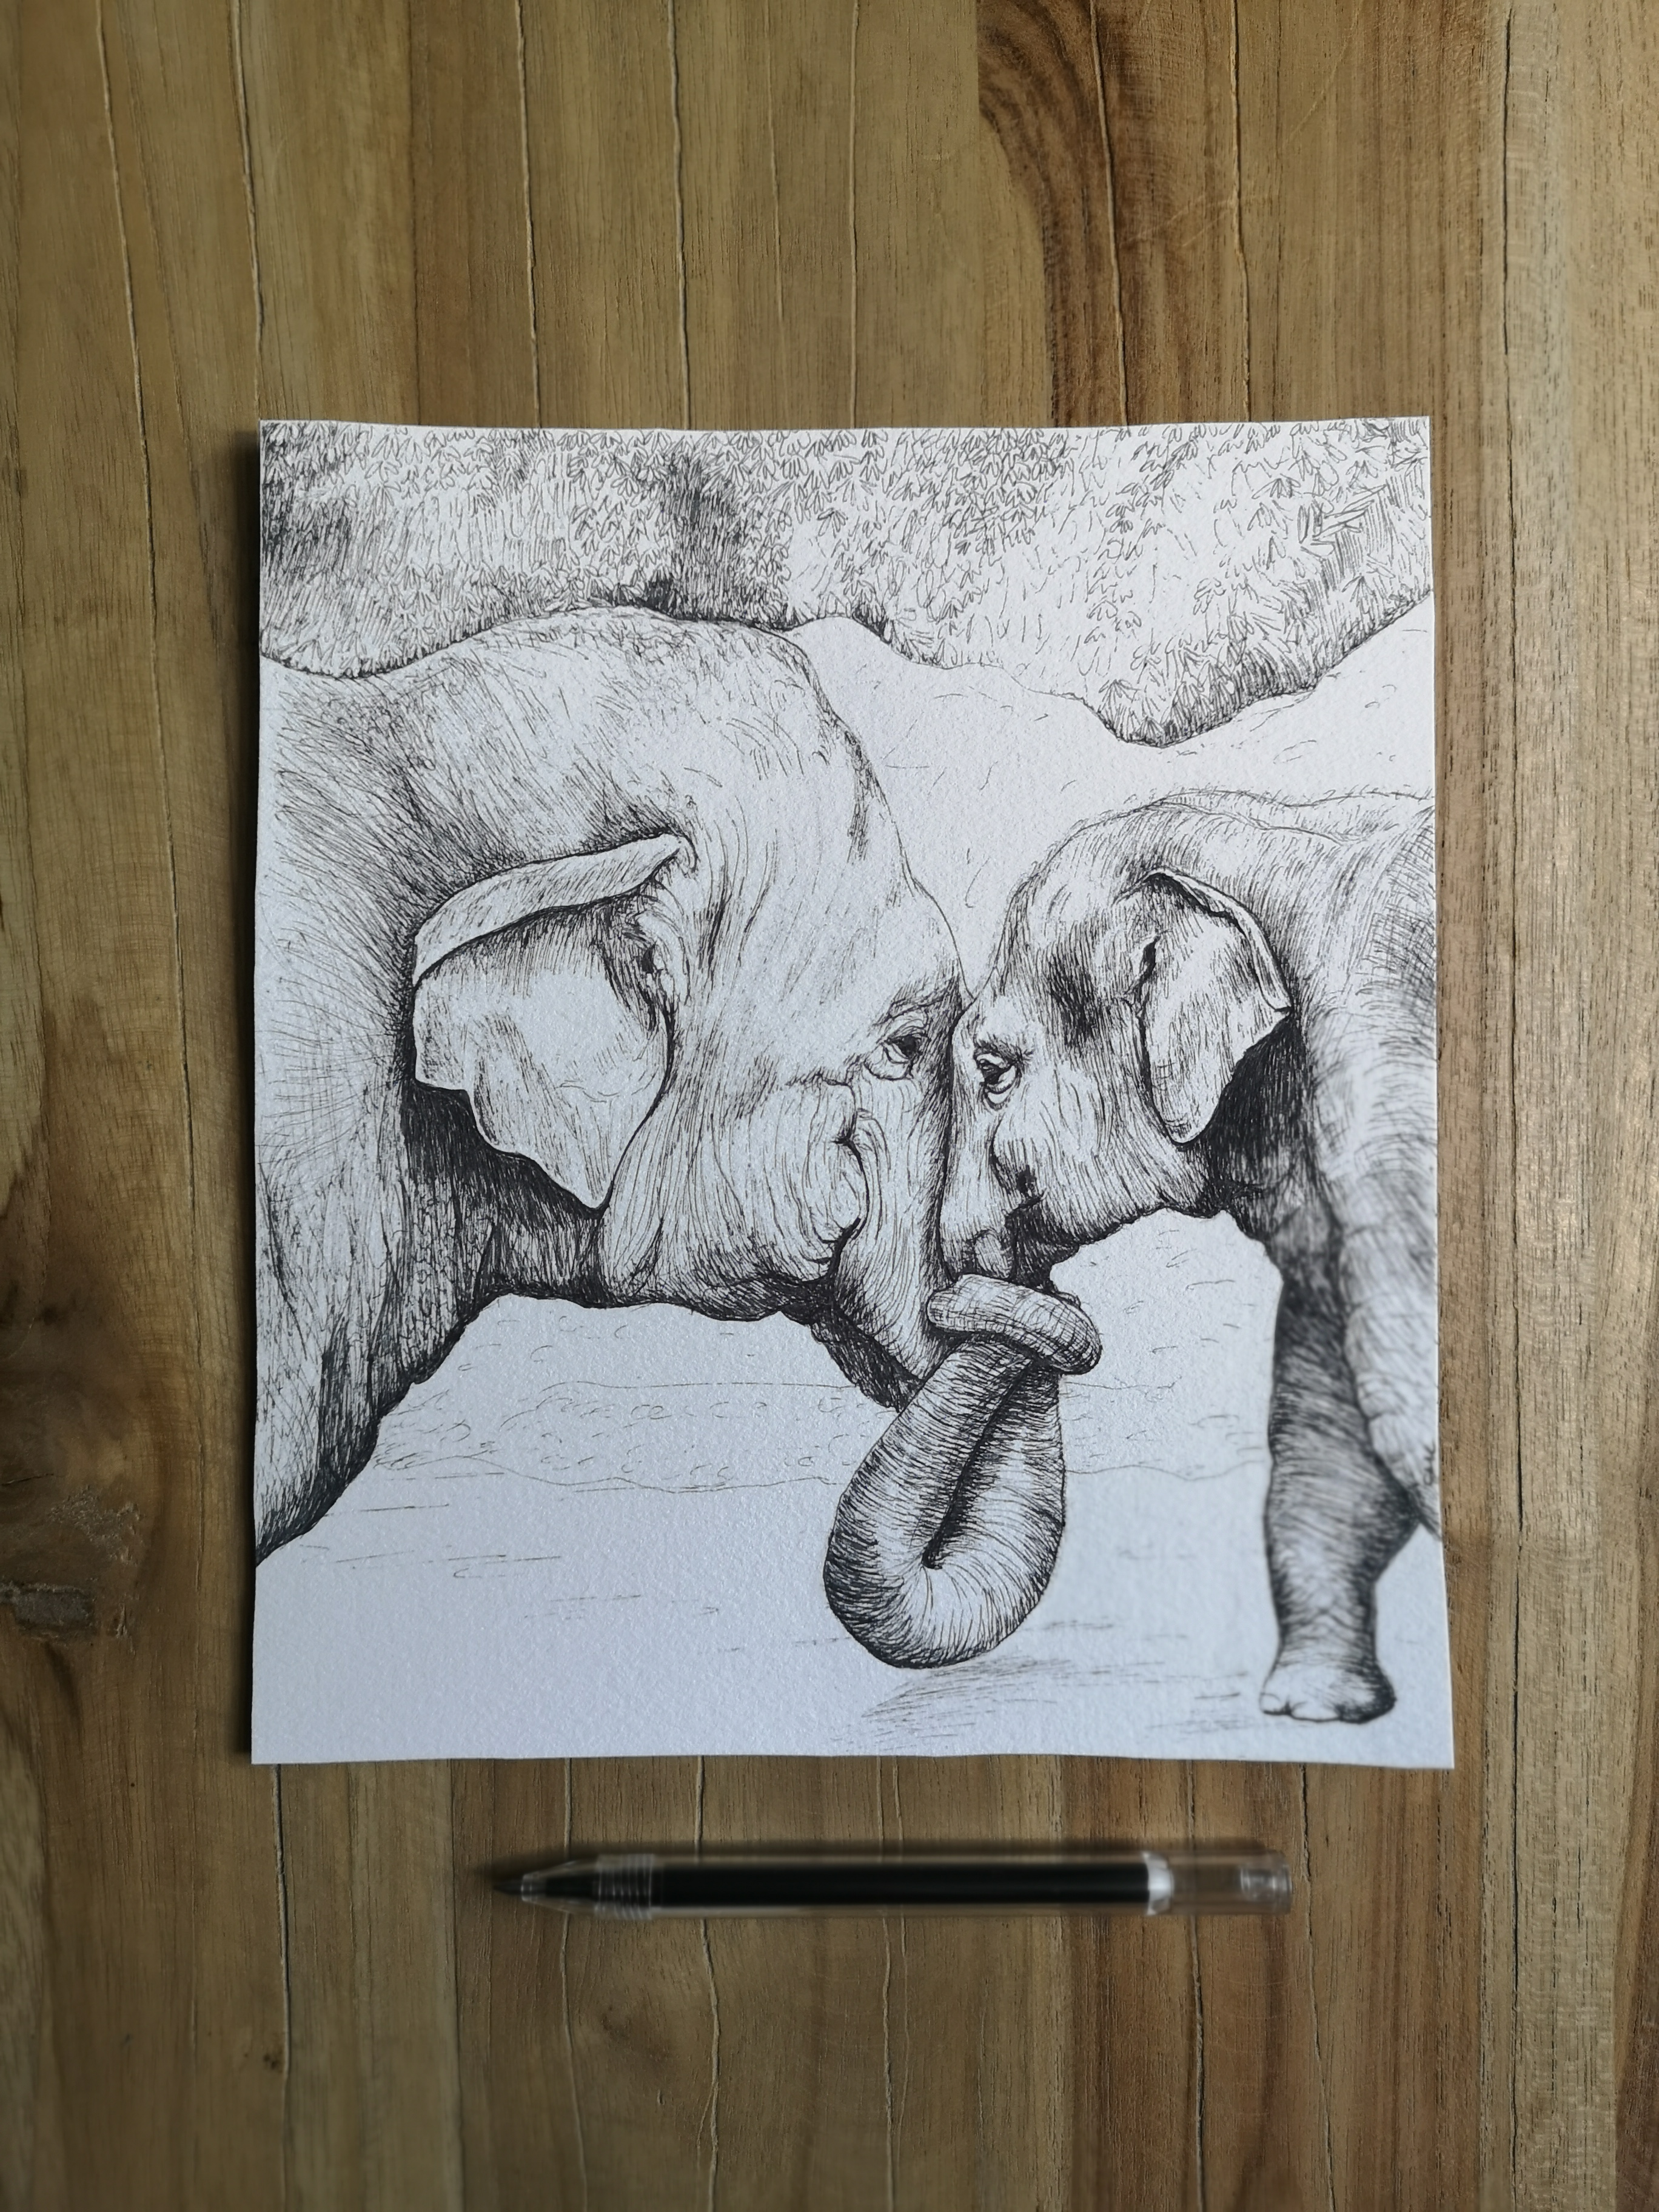 Elephants by Cri Cri Studio